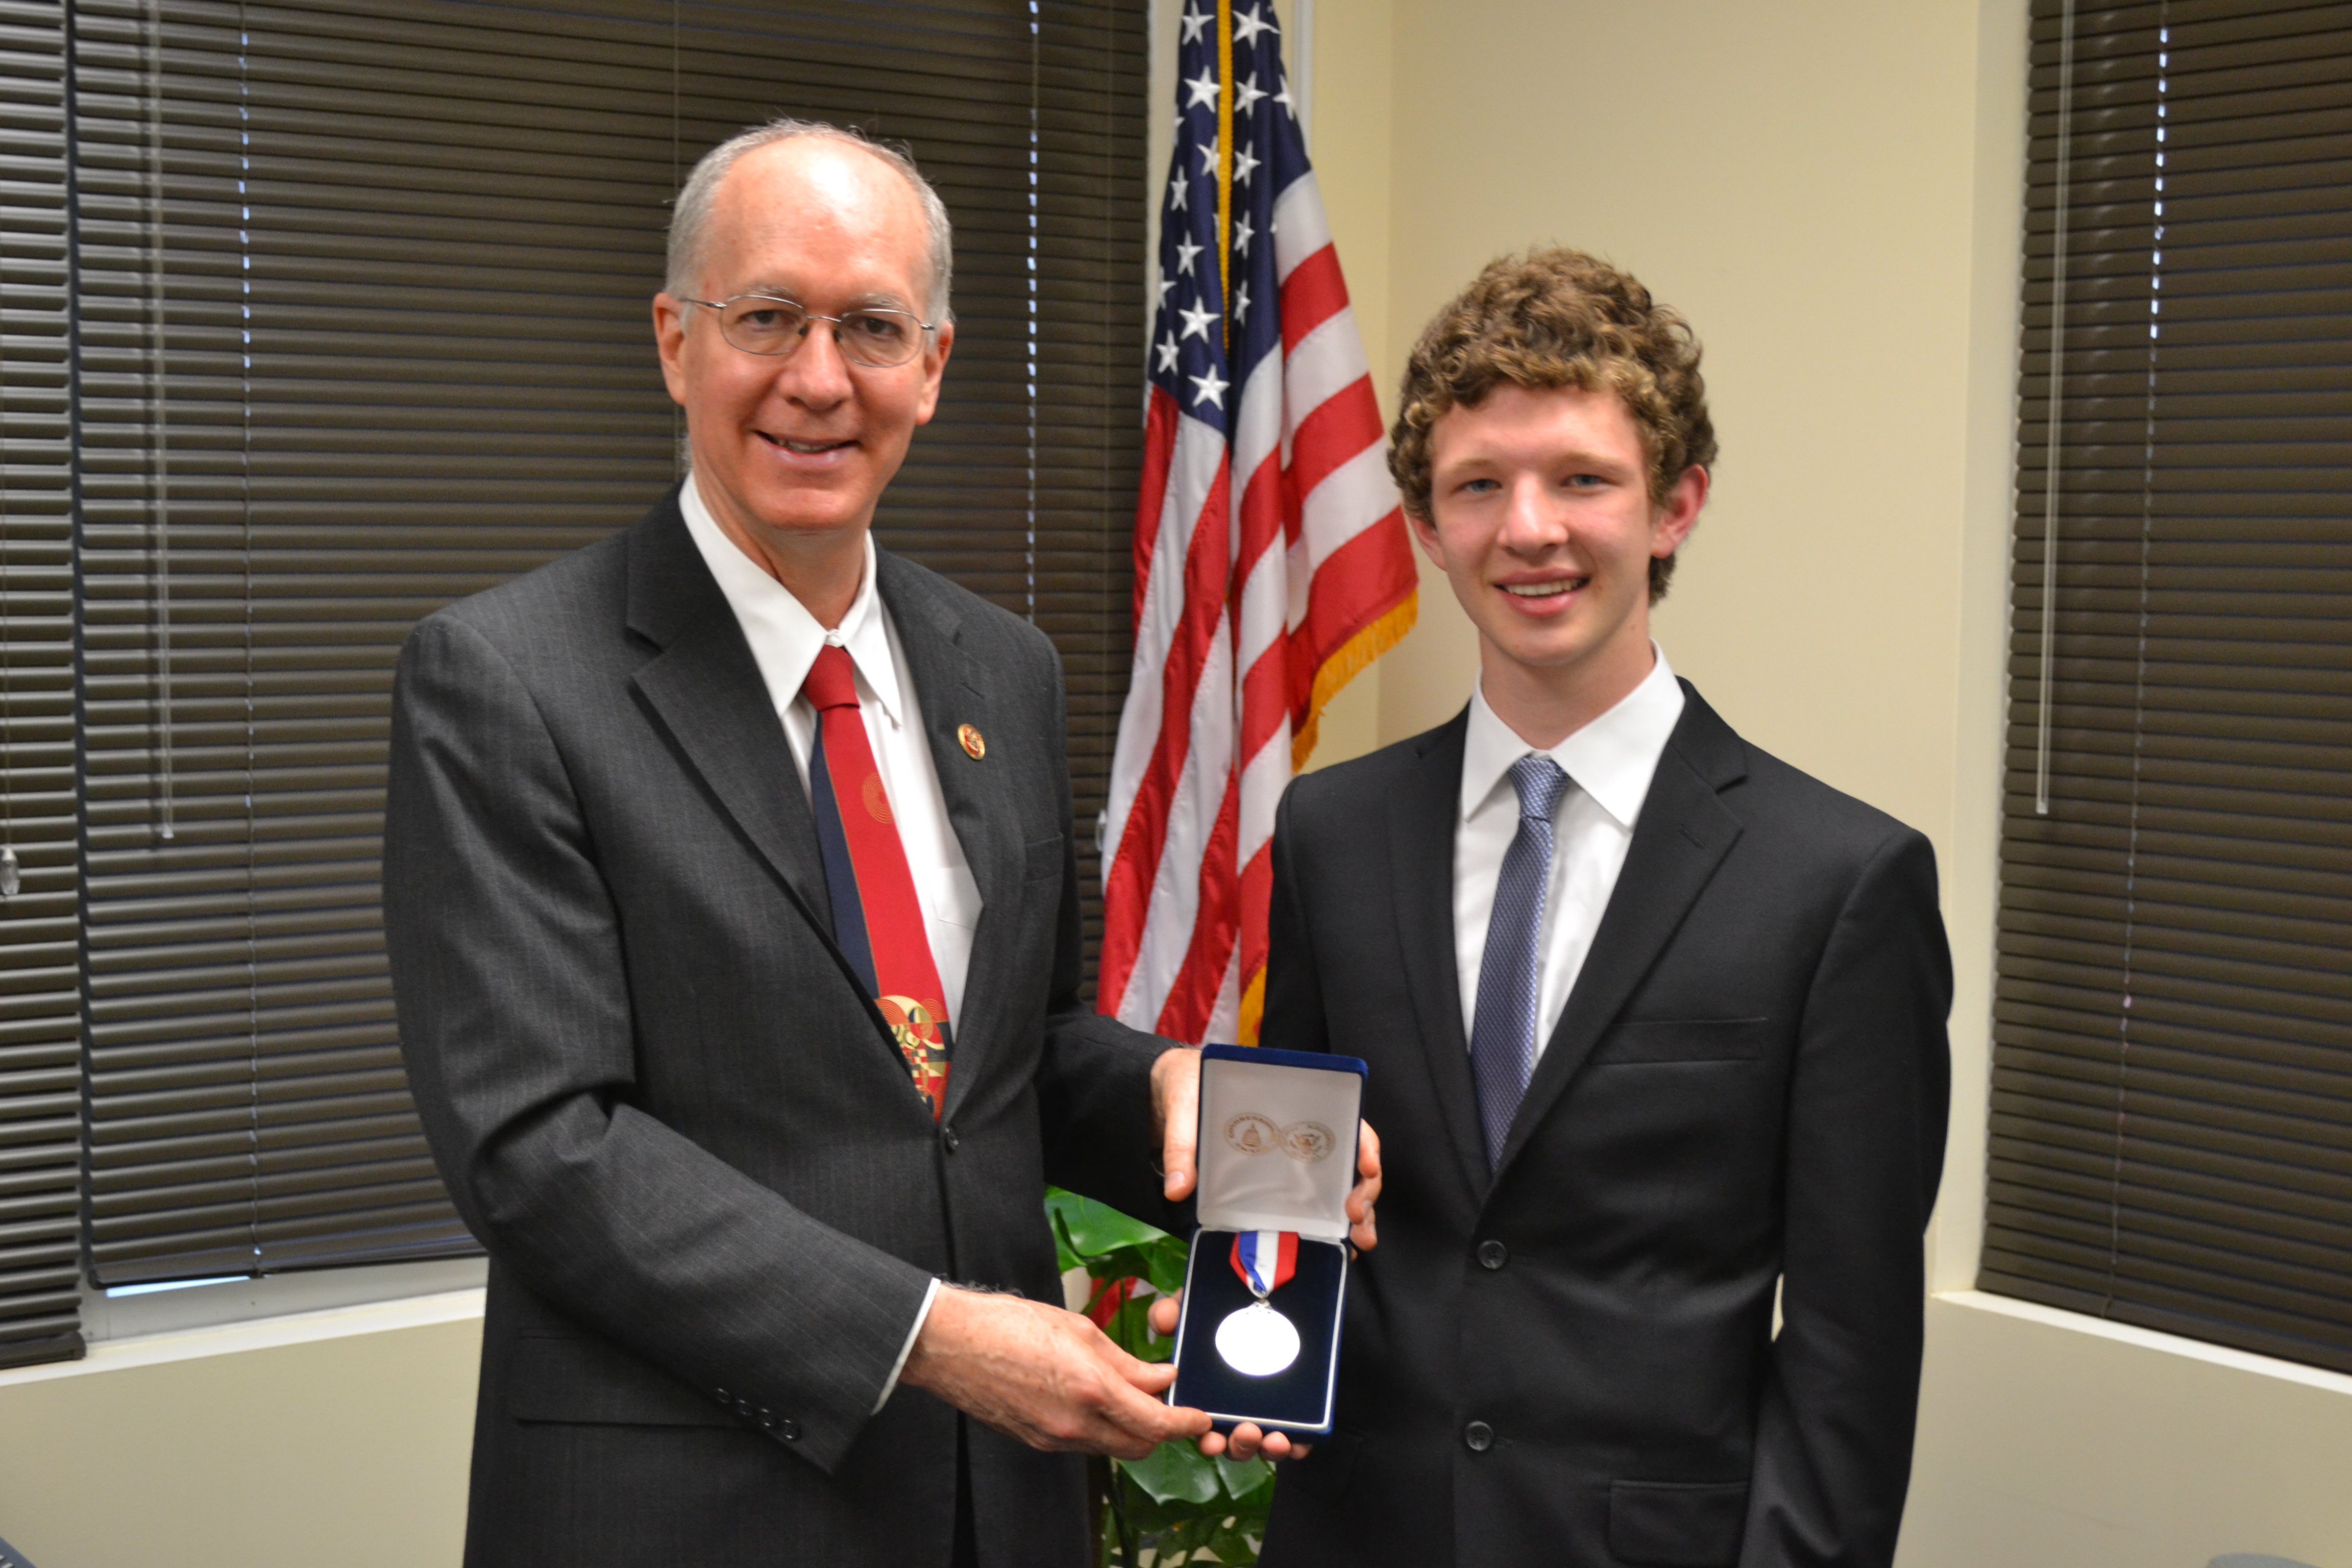 Foster presents Congressional Award